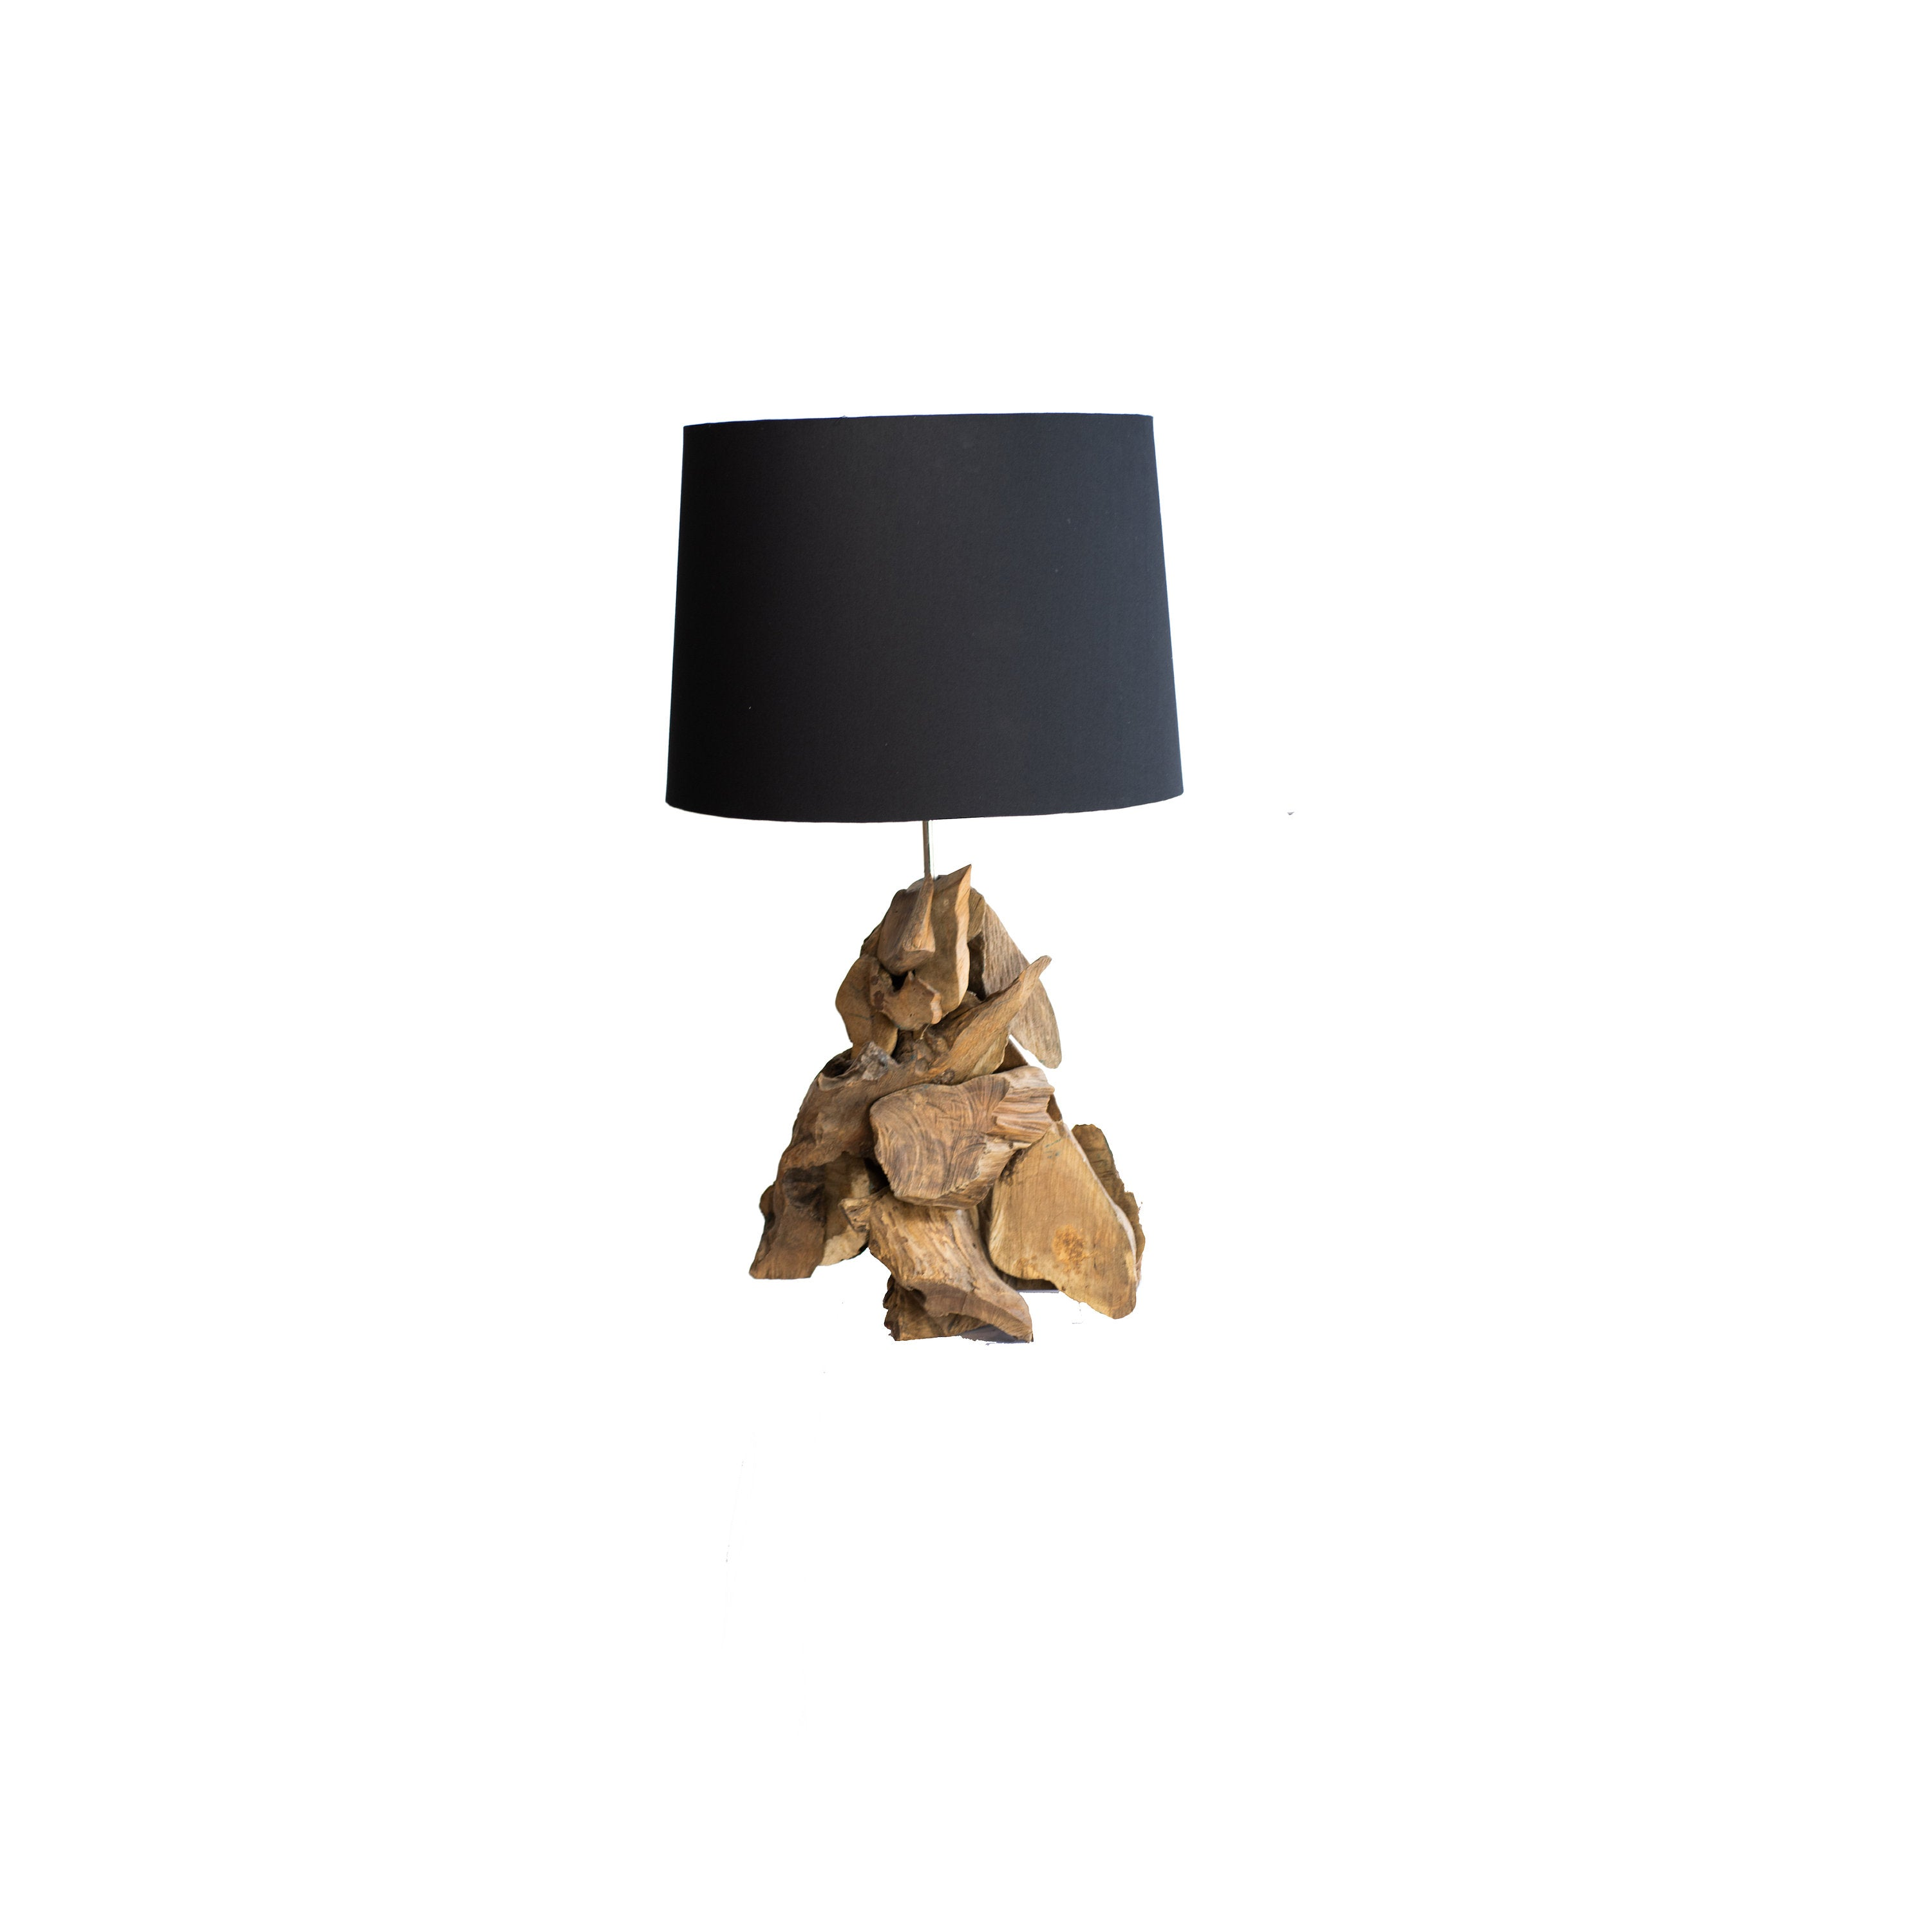 Table lamp made from teak wood and black shade